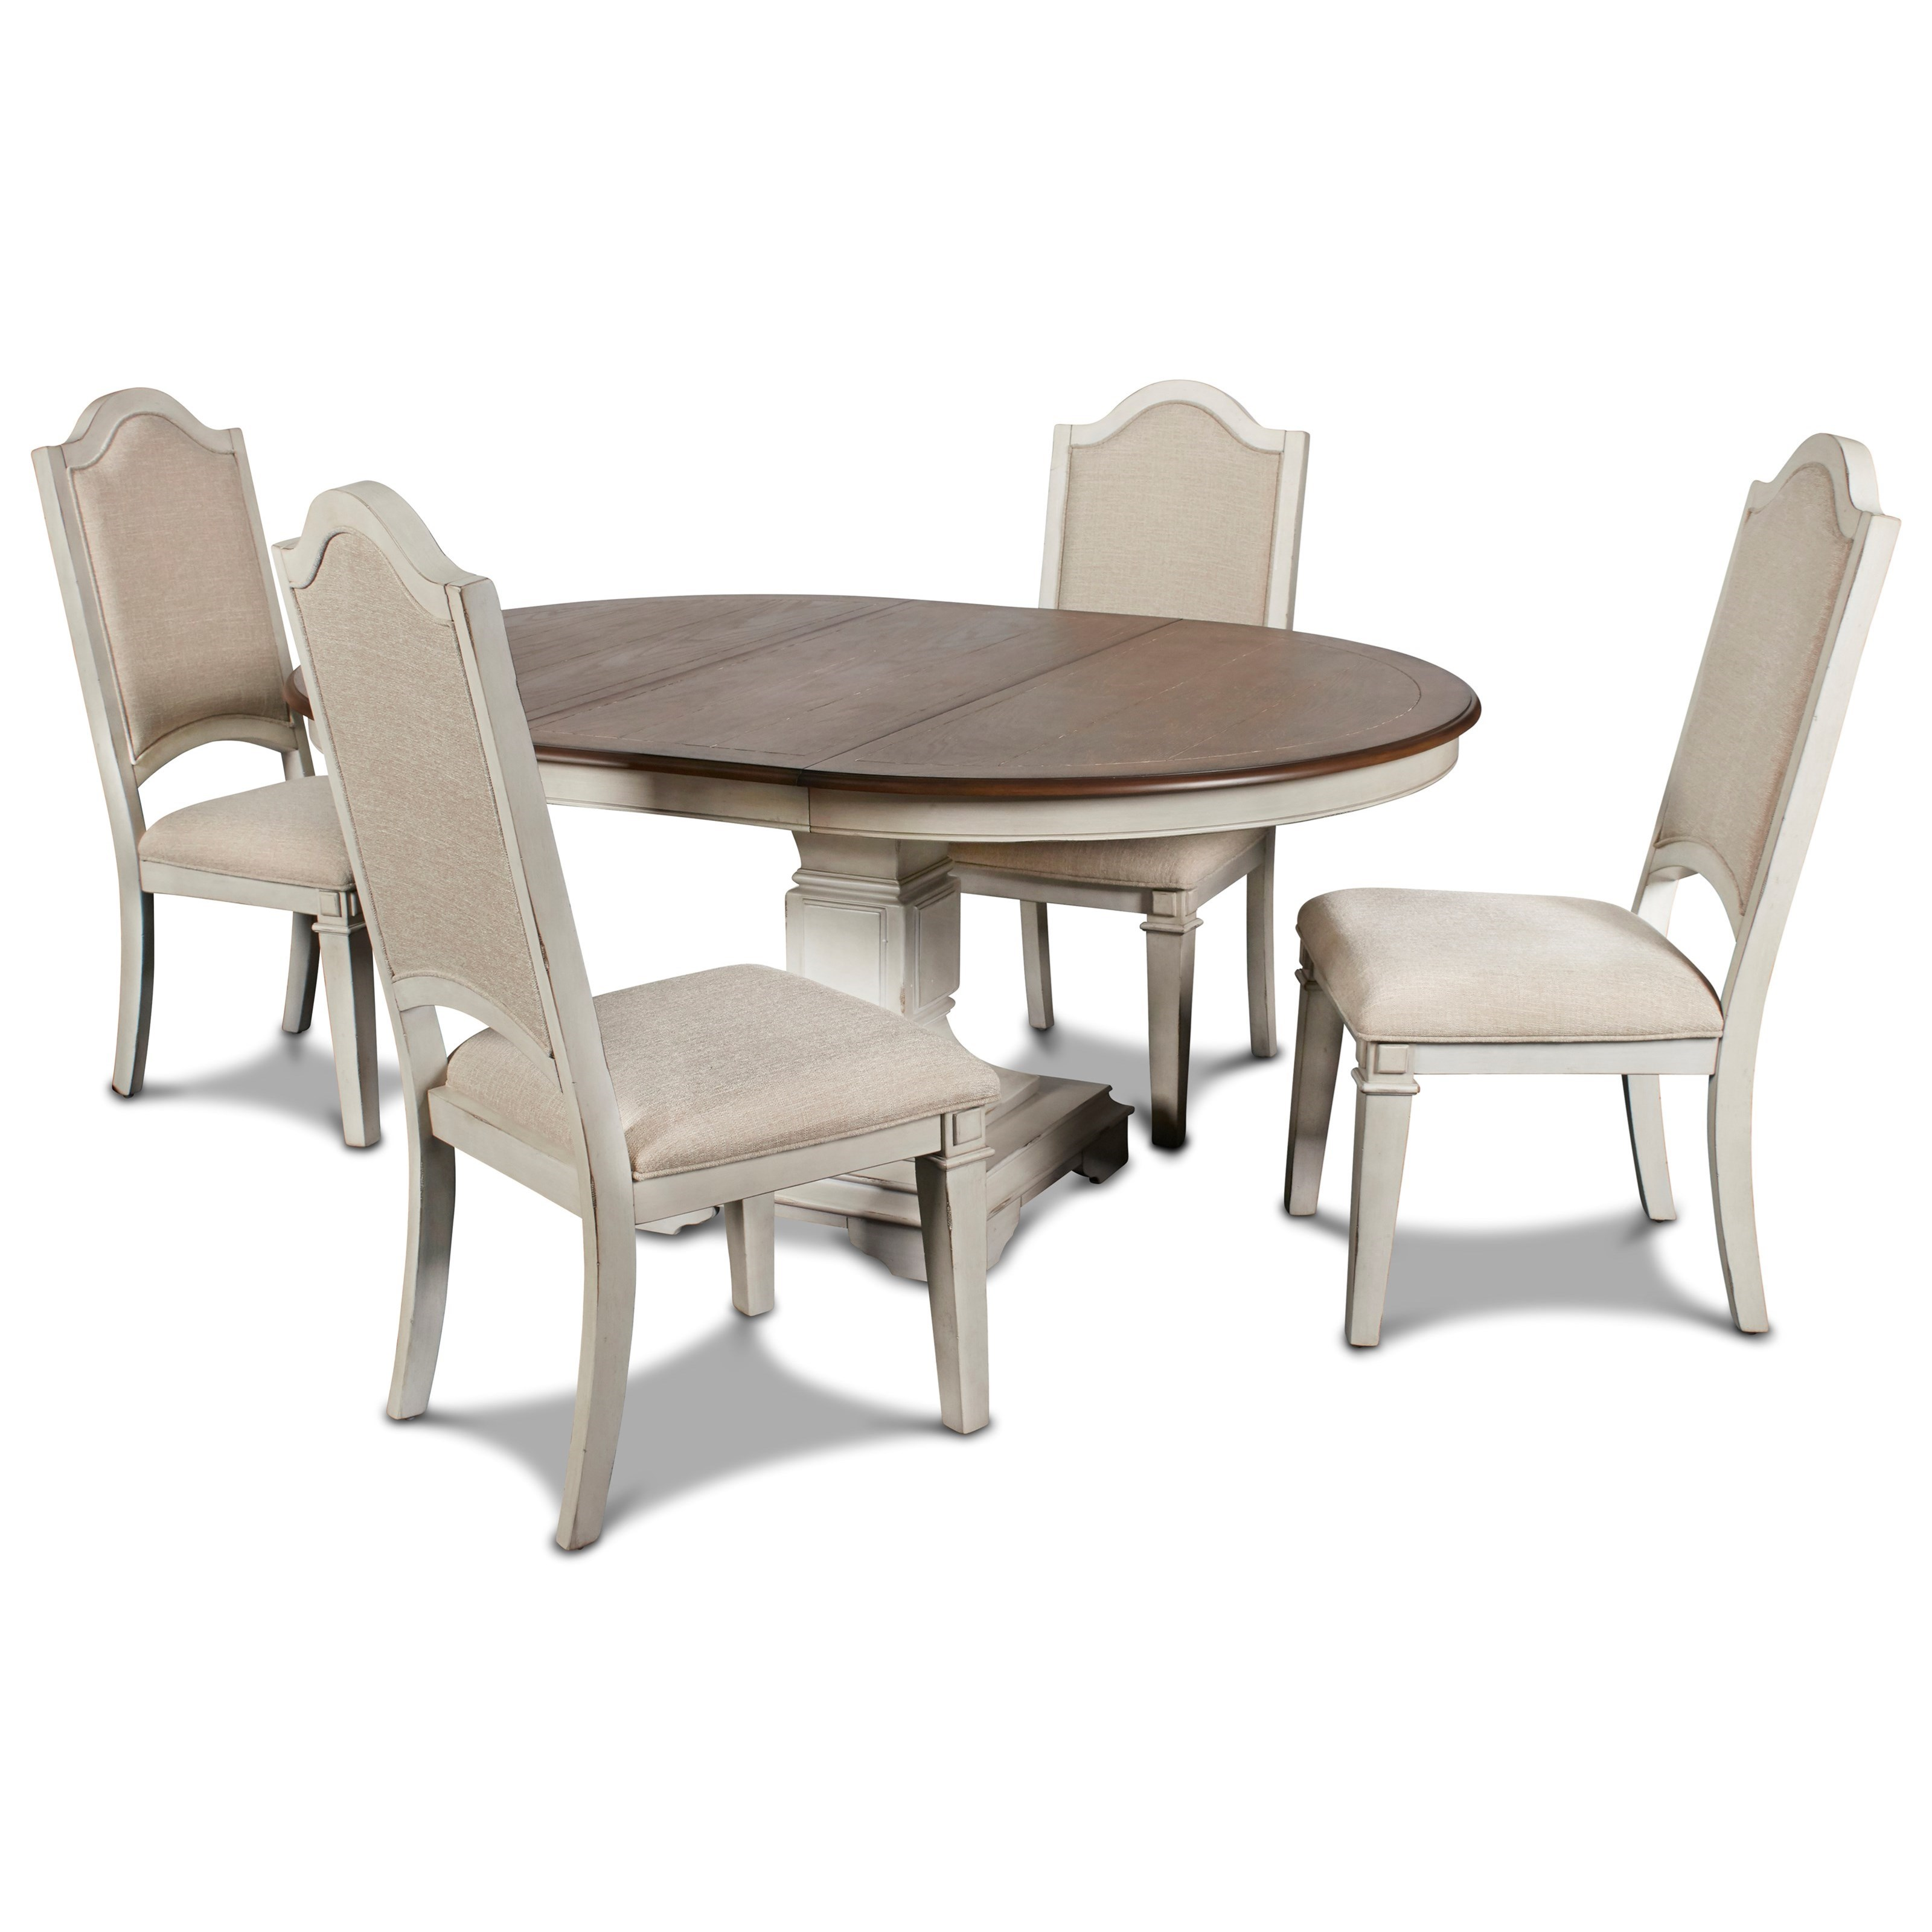 Anastasia 5-Piece Table and Chair Set by New Classic at Carolina Direct